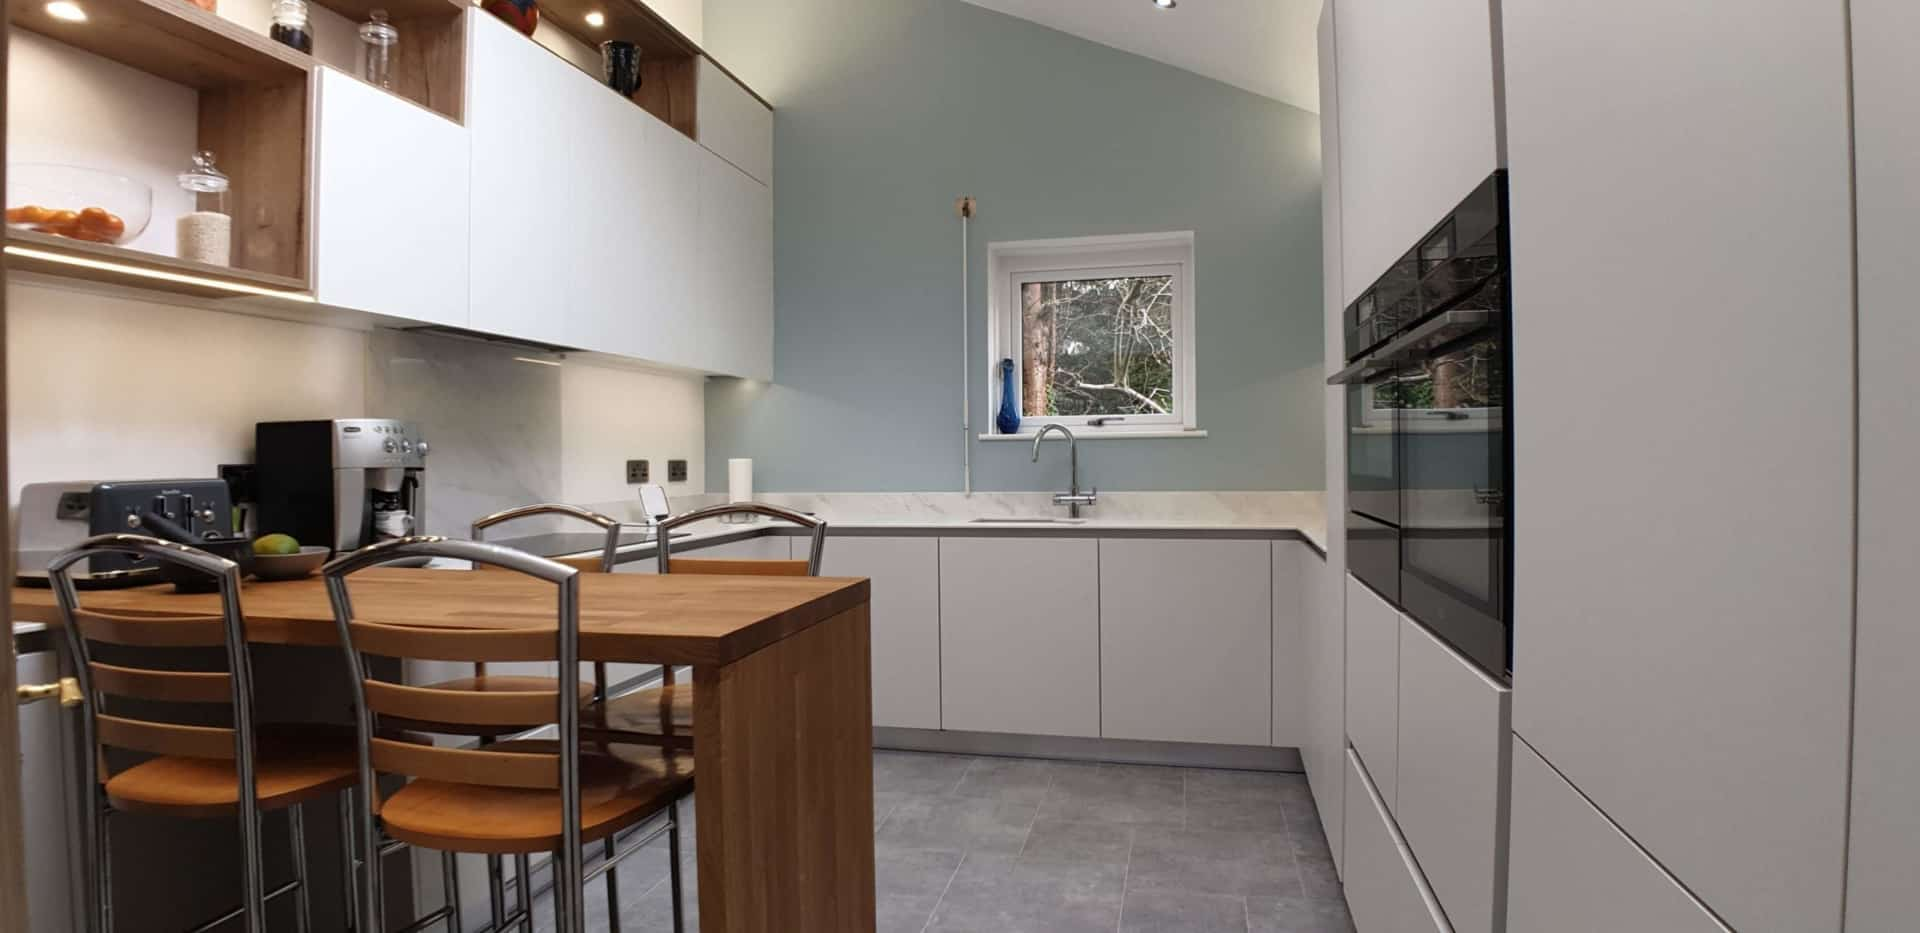 Modern style fitted kitchen